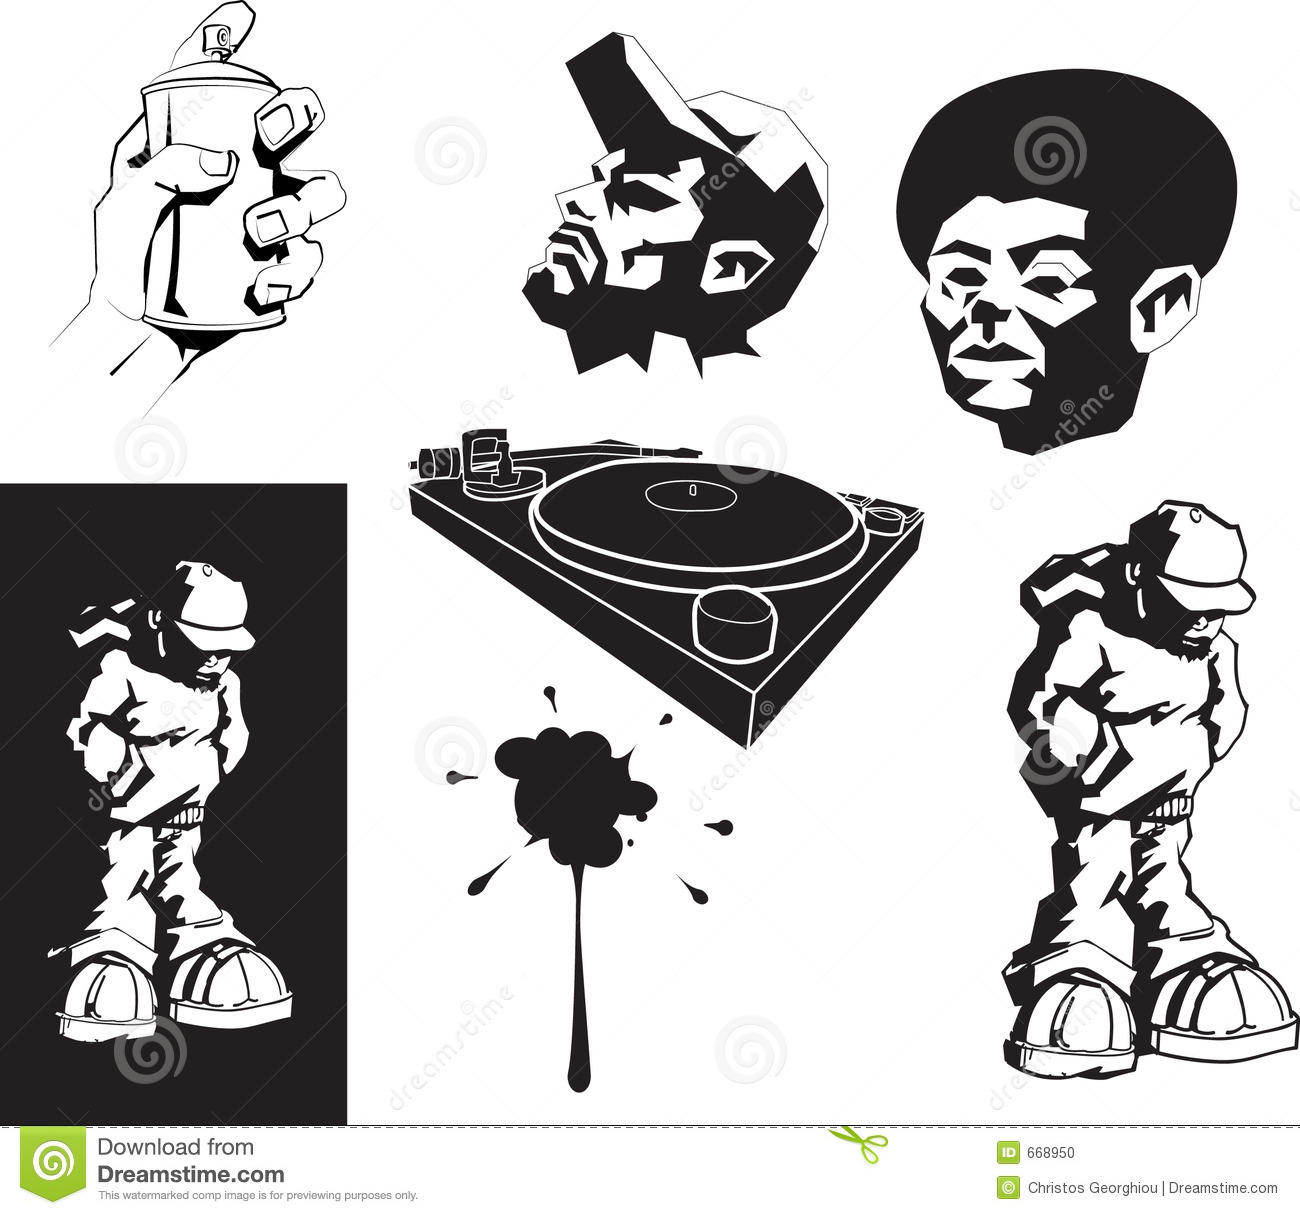 Urban imagery stock vector. Illustration of stencil, paint ...